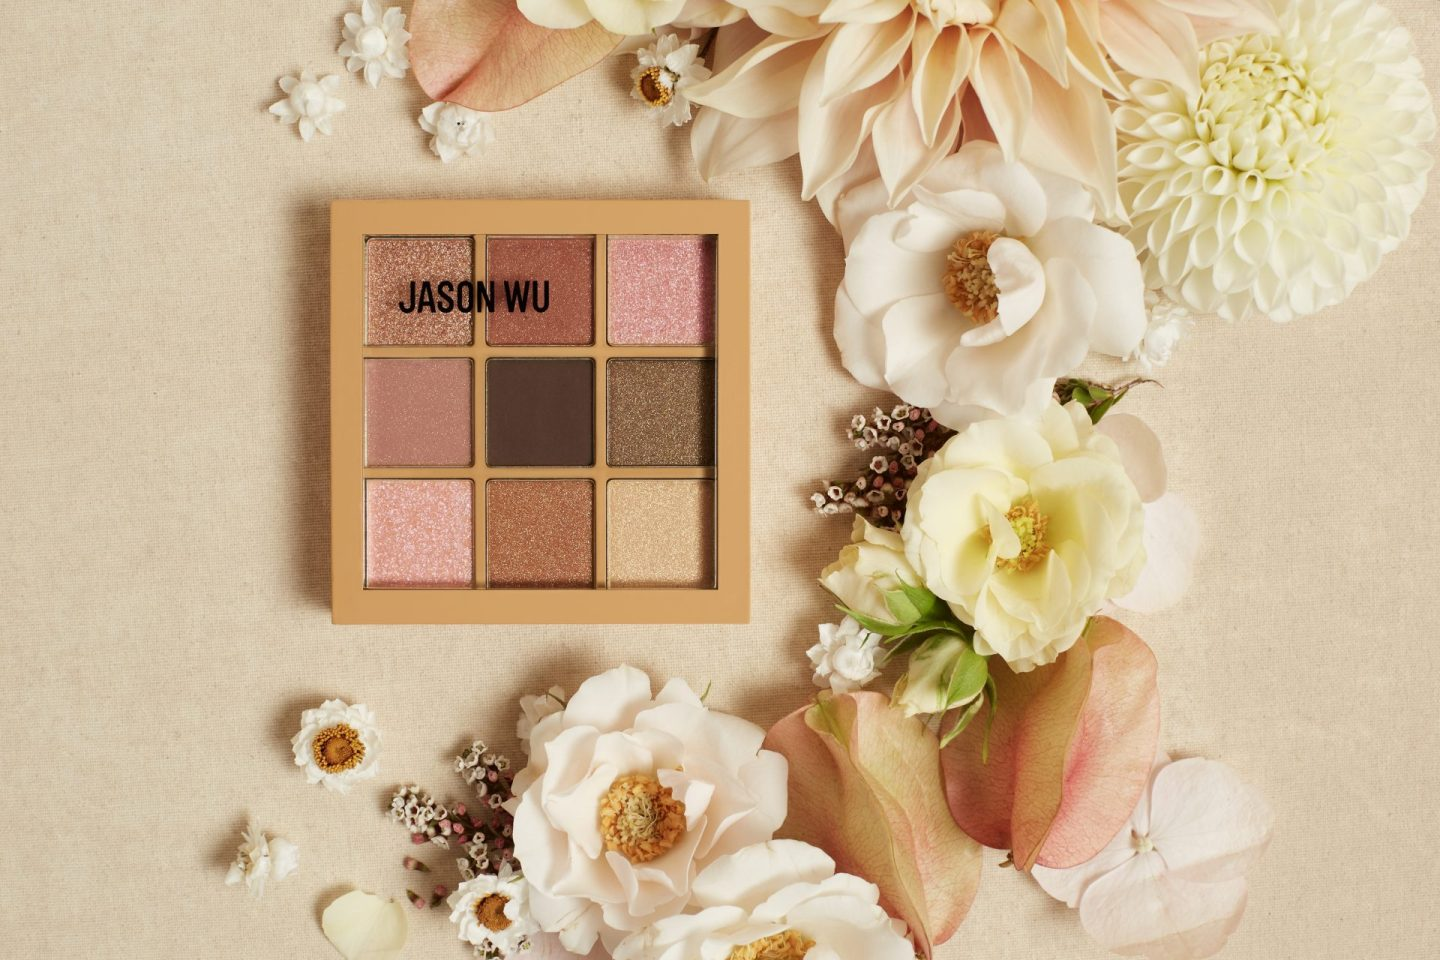 Fashion Designer Jason Wu Launches Jason Wu Beauty